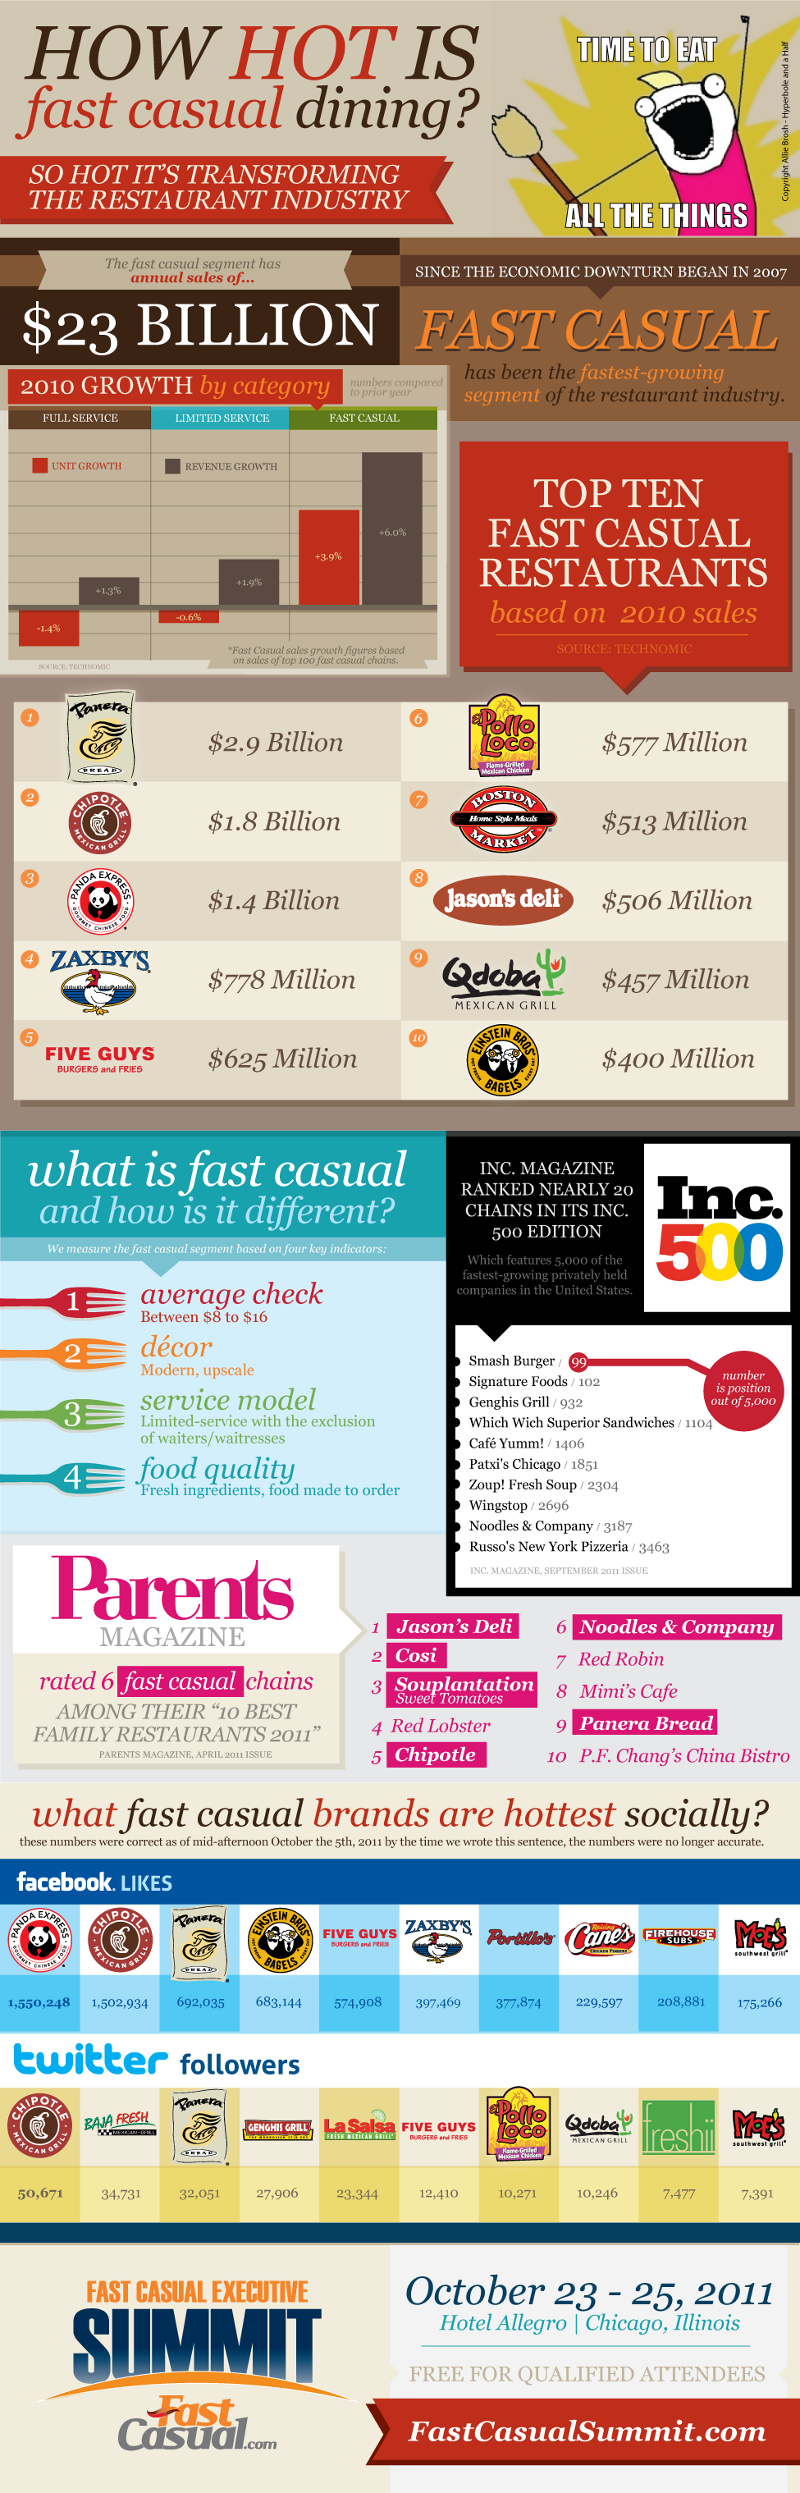 Fast Casual Dining Industry Facts